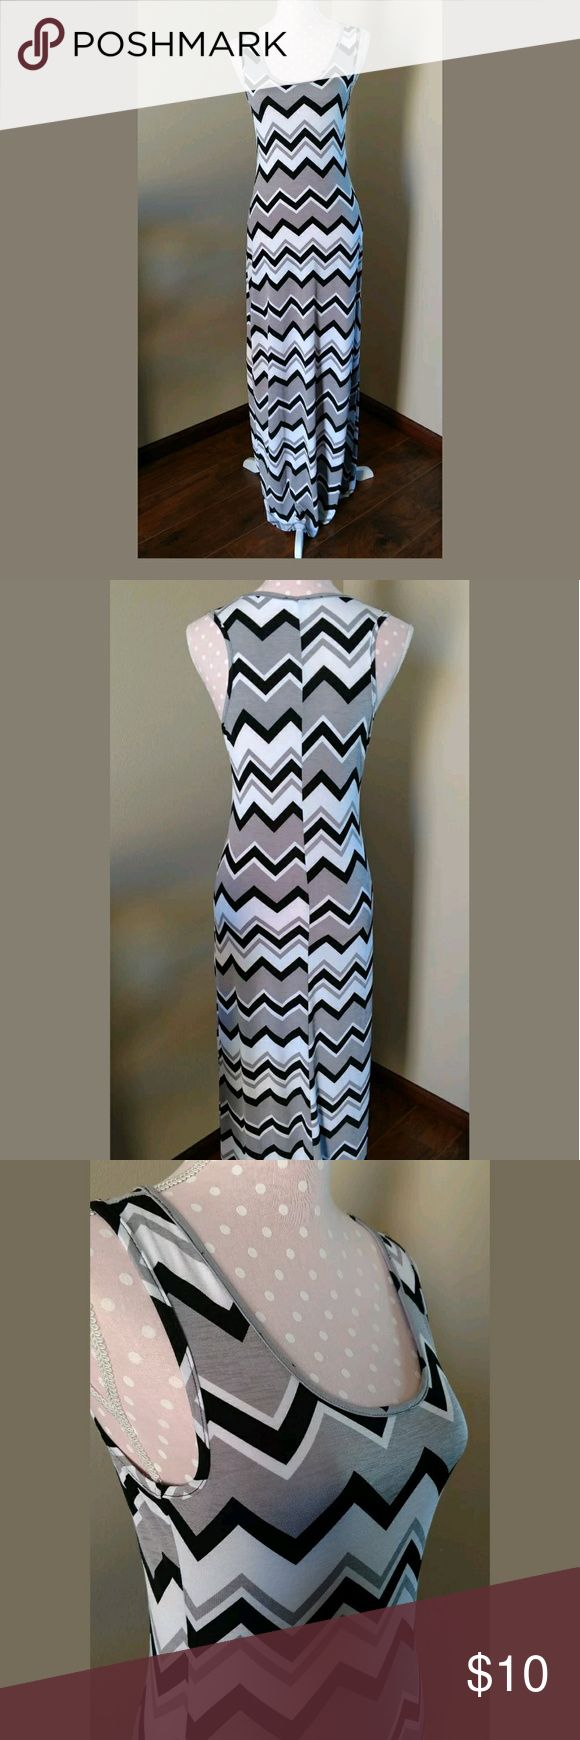 """Gray Chevron Maxi Dress Medium Ladies Maxi Dress. This dress is in excellent pre-owned condition. Gray black and white chevron pattern. Sleeveless. Polyester spandex fabric. The tag is unreadable for me so I do not know where it was made. or the brand.  Size medium. Across the chest is 16"""" un-stretched and from the shoulder to the hemline is 56"""". Dresses Maxi"""